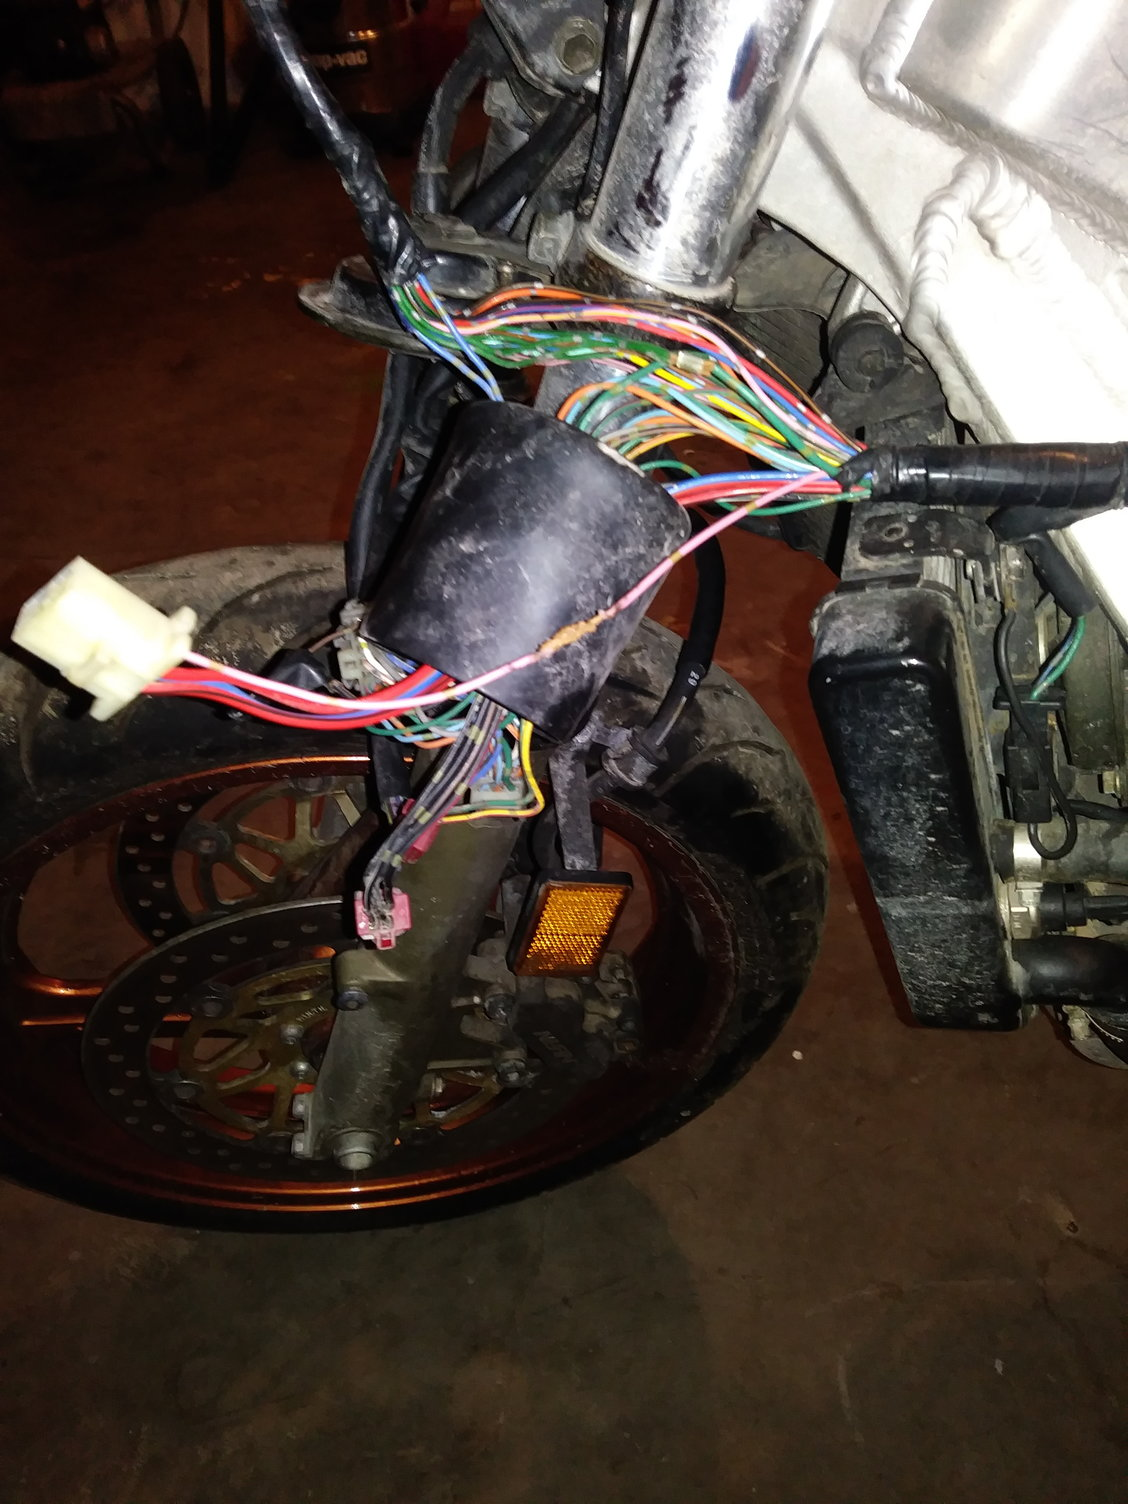 Zener Diode Issue - CBR Forum - Enthusiast forums for Honda